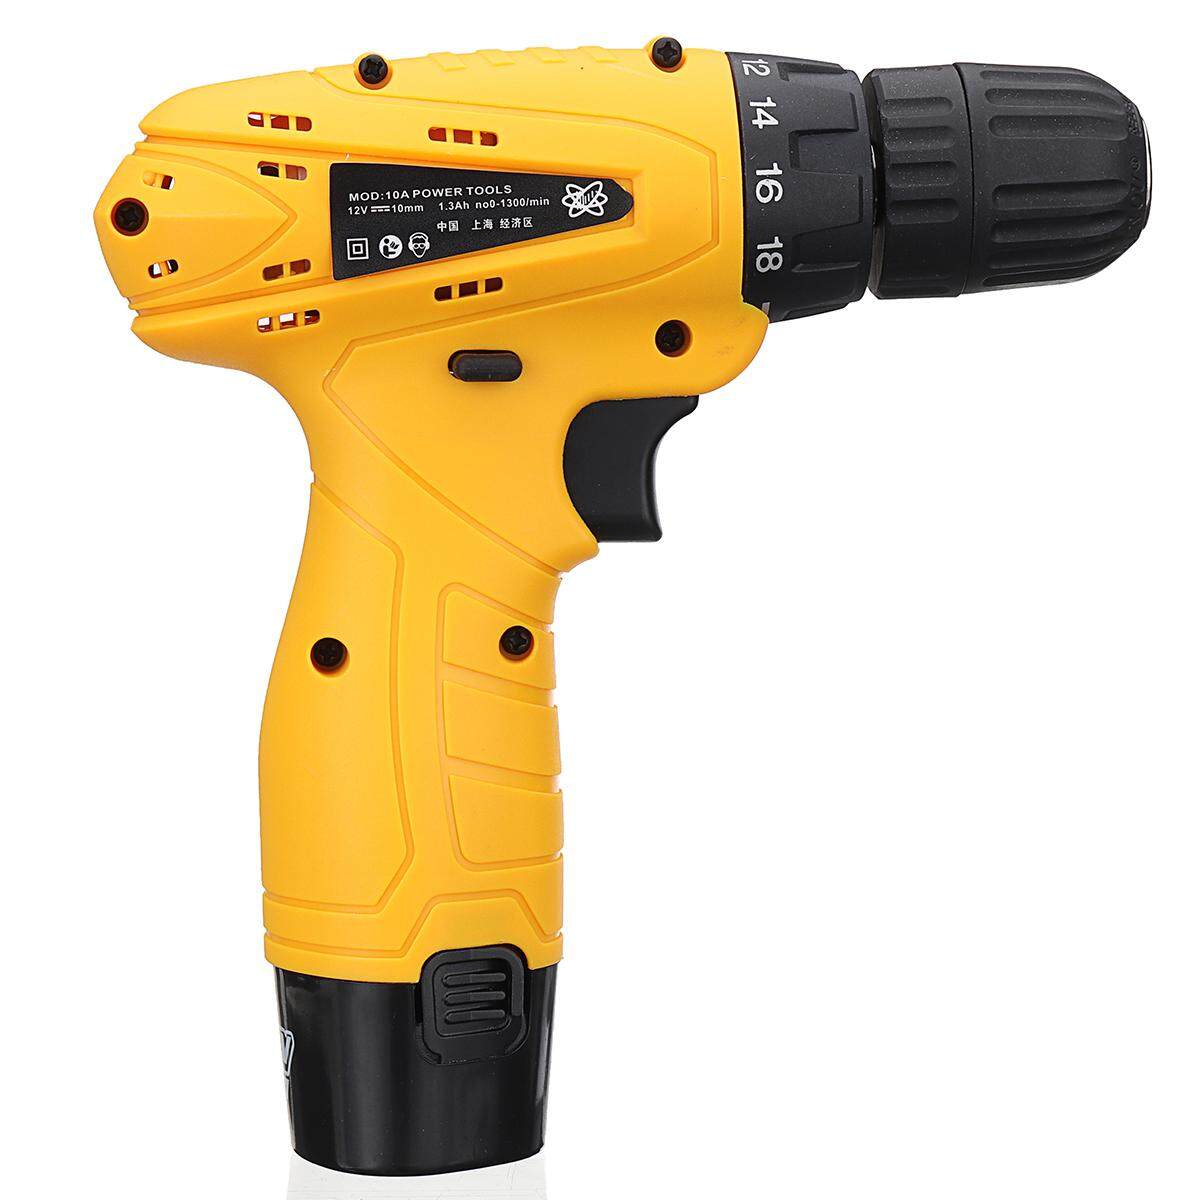 12V Cordless Rechargeable Drill Driver Electric Screwdriver With Box - intl